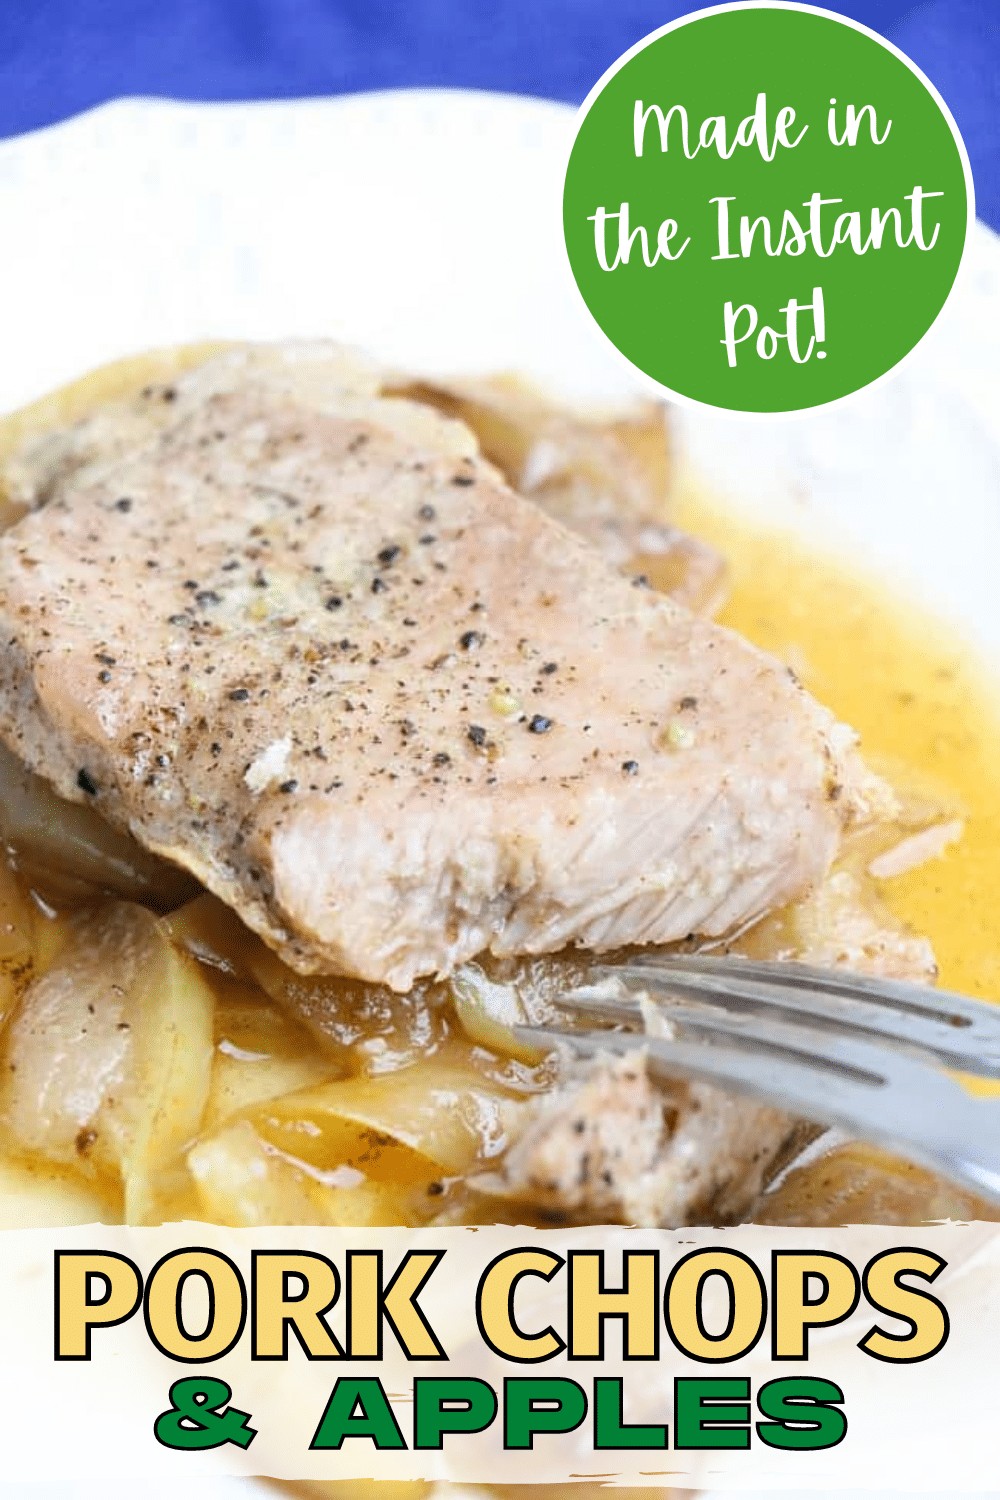 These Instant Pot Pork Chops and Apples taste great, smell great, and make the perfect easy, family weeknight dinner since kids love them too. #instantpot #pressurecooker #porkchops #dinner via @wondermomwannab